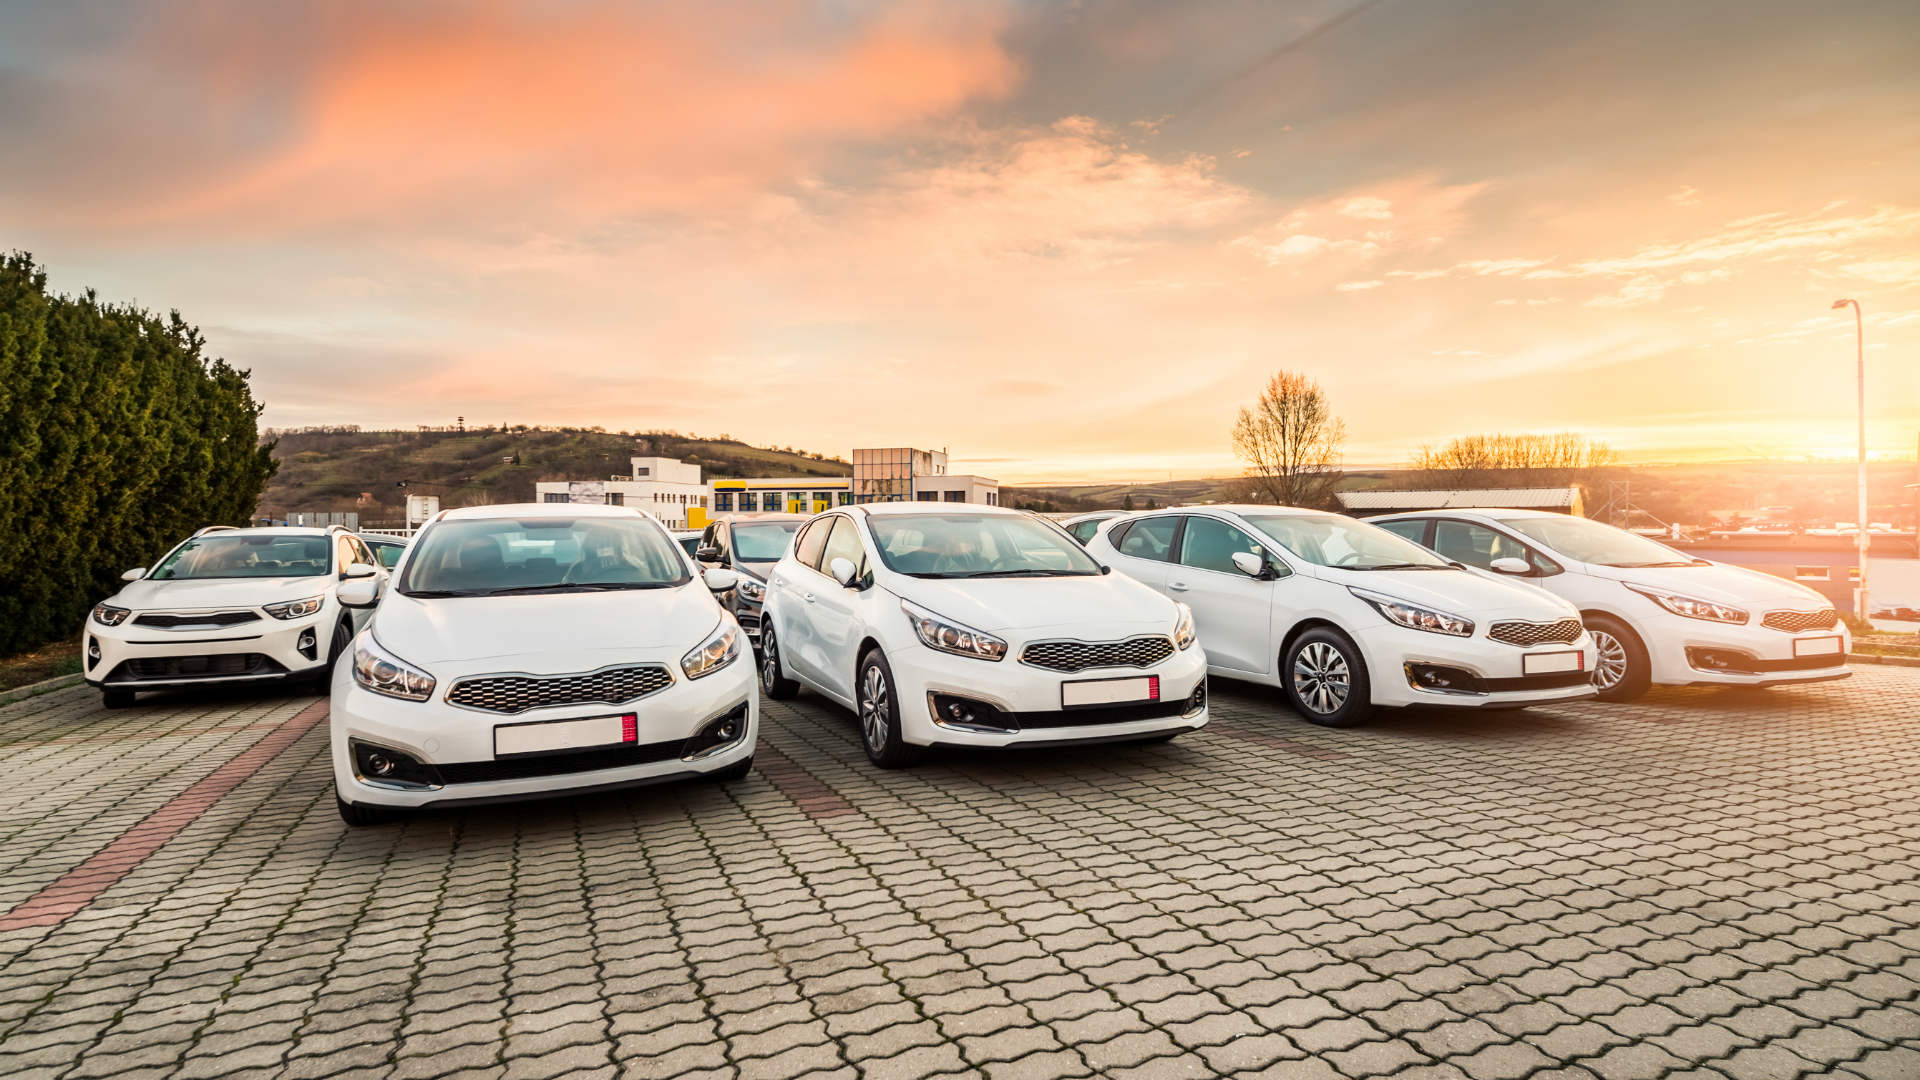 White cars are most popular